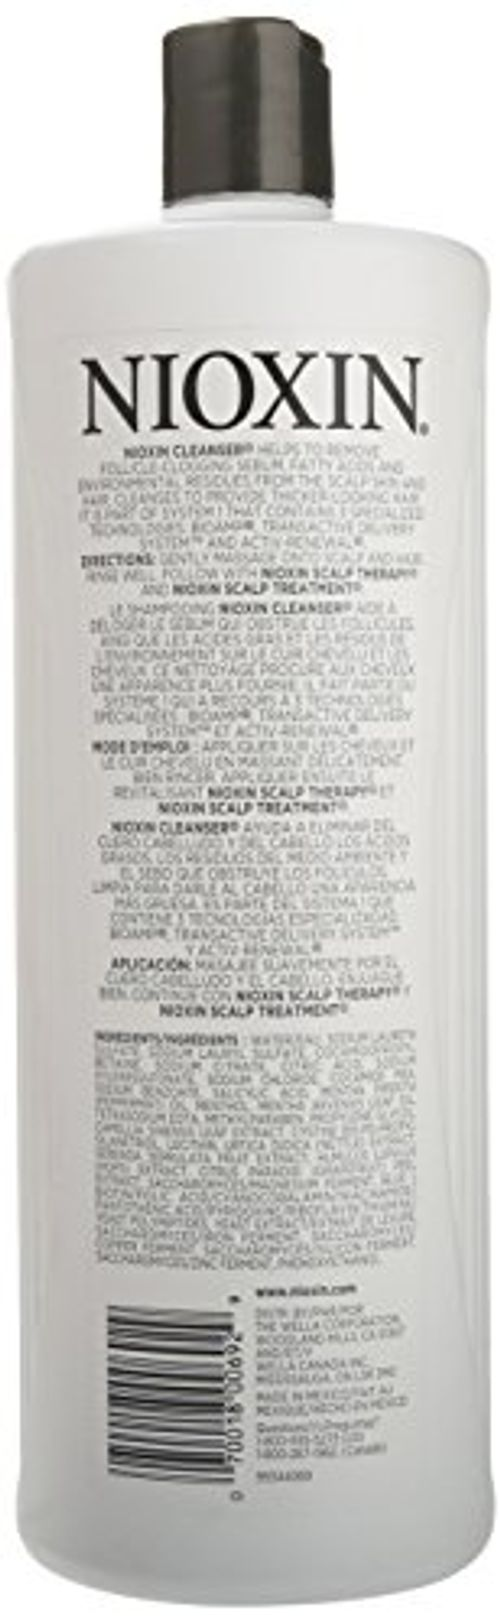 photo Wallpaper of Nioxin-Nioxin System 1 Cleanser   1000 Ml-